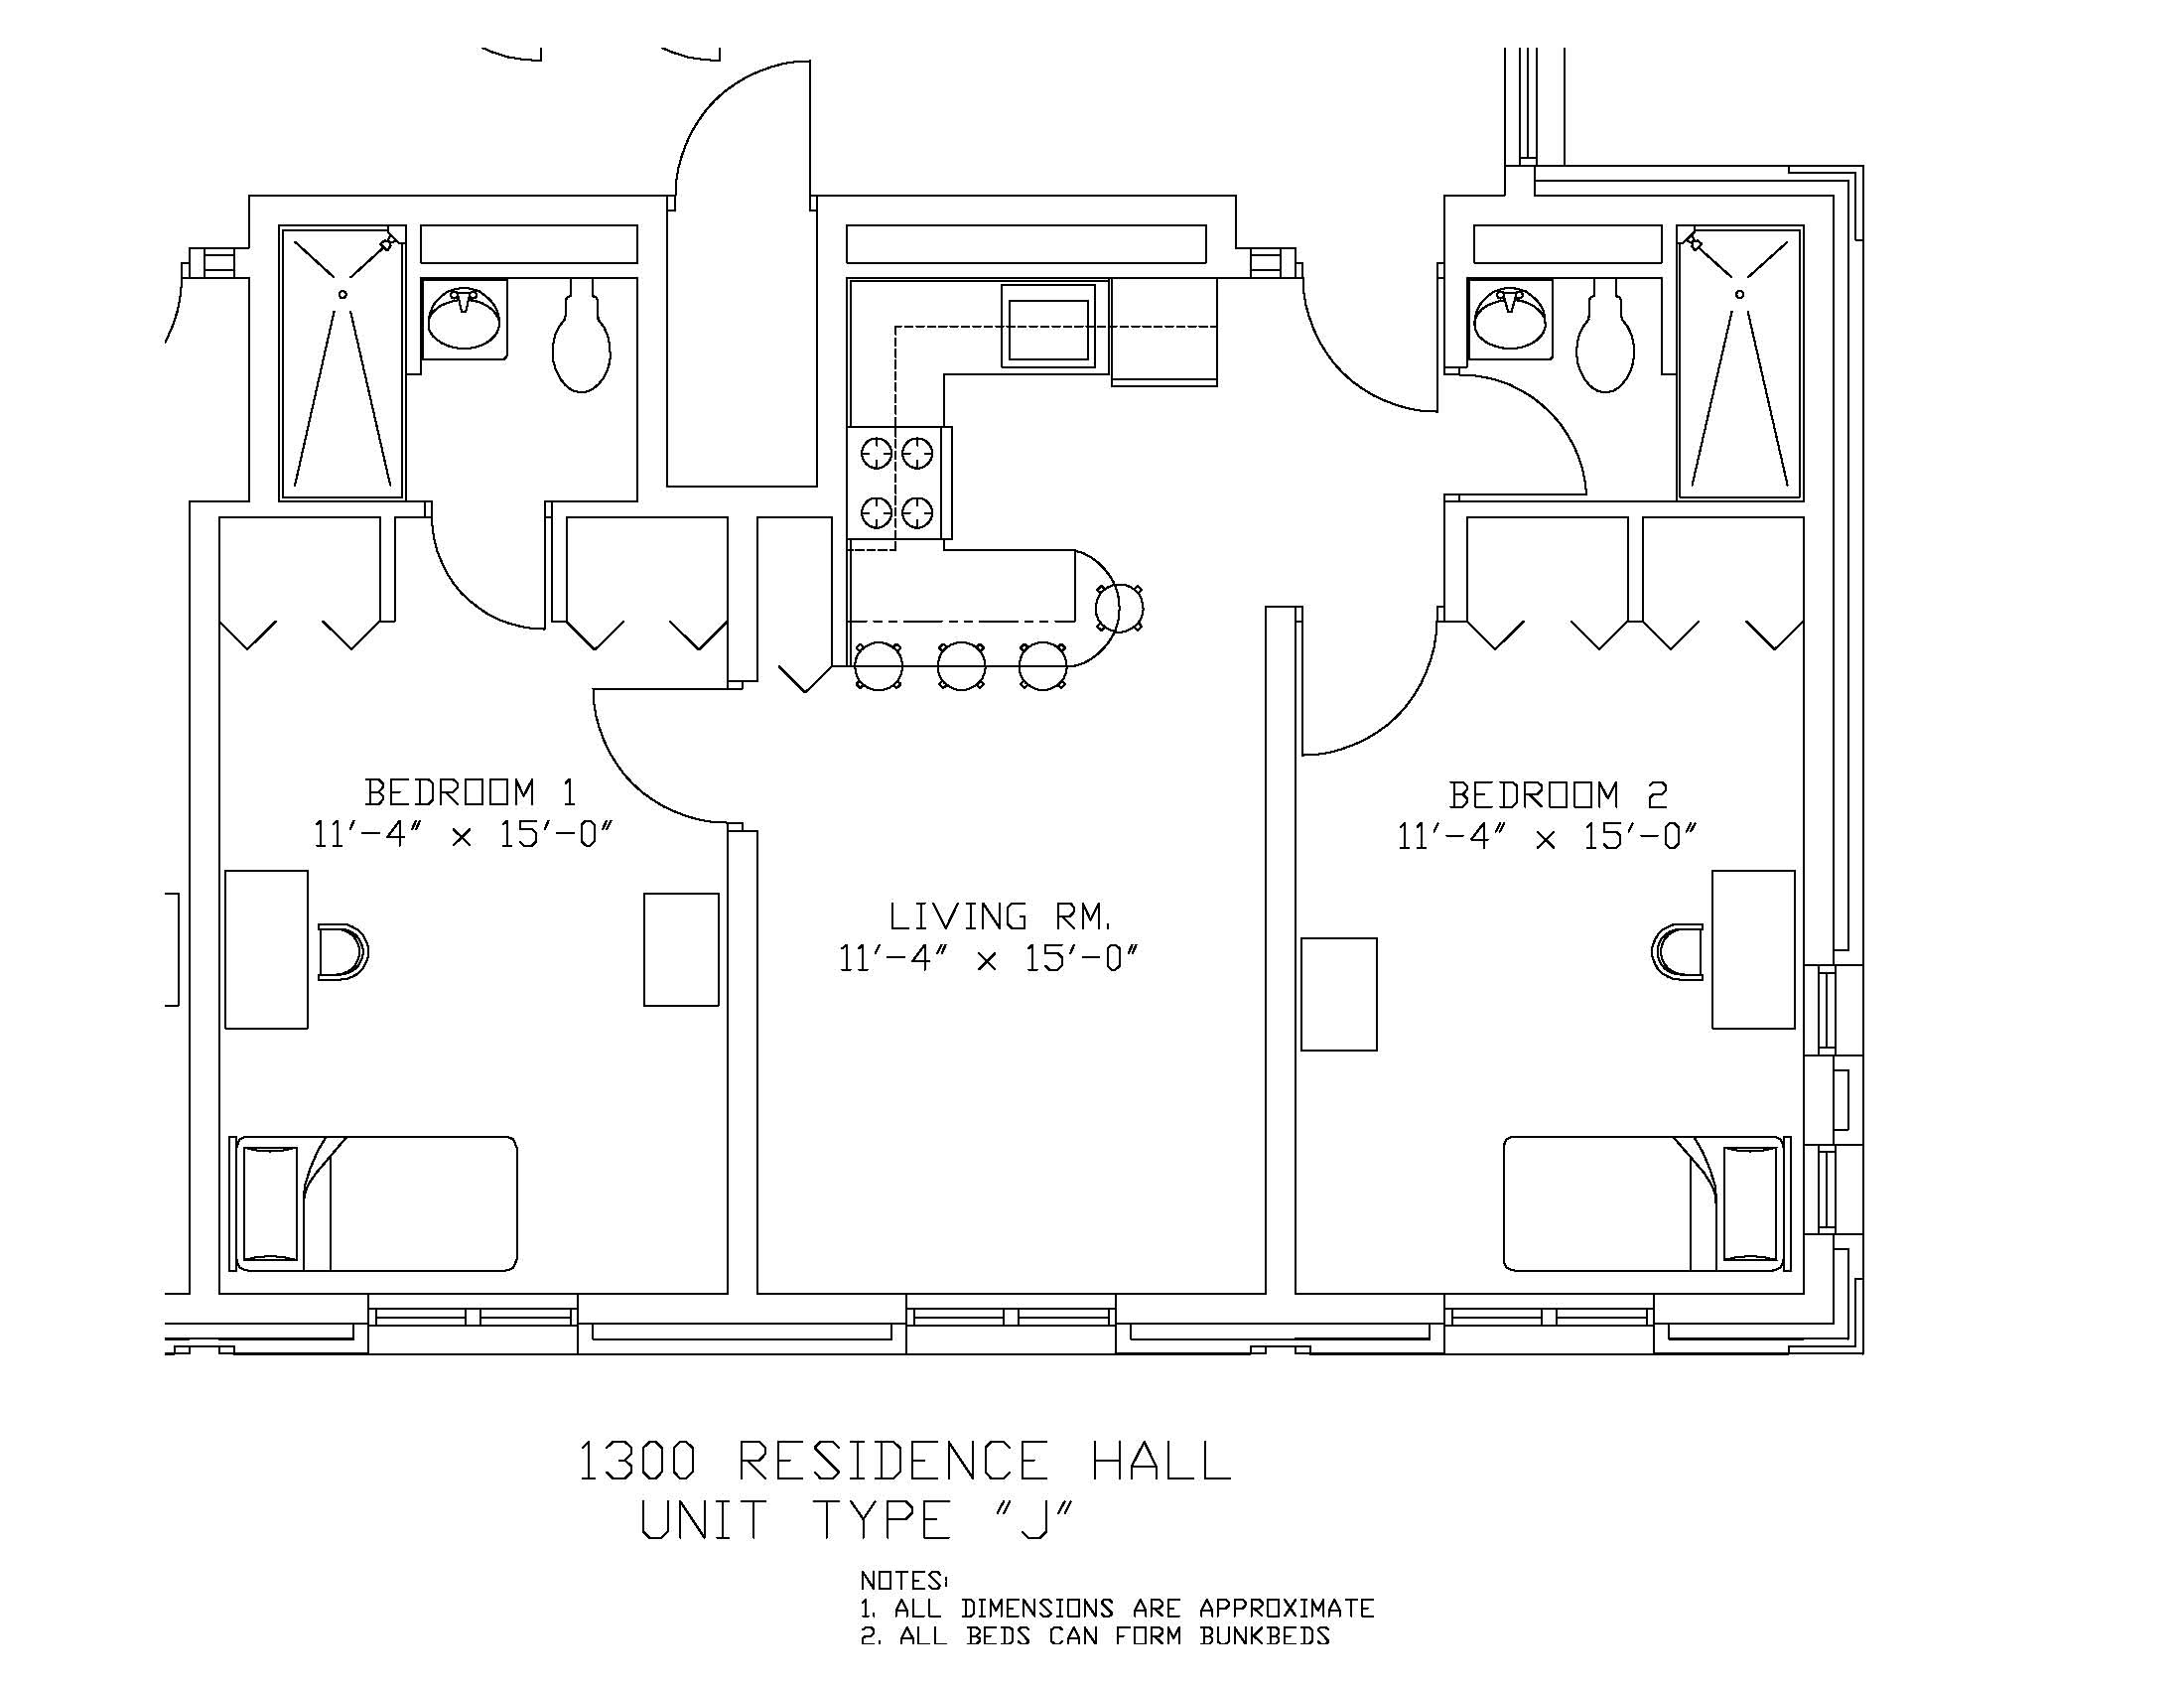 microwave diagram wiring diagram for rival microwave 1300 residence hall university housing and residential life